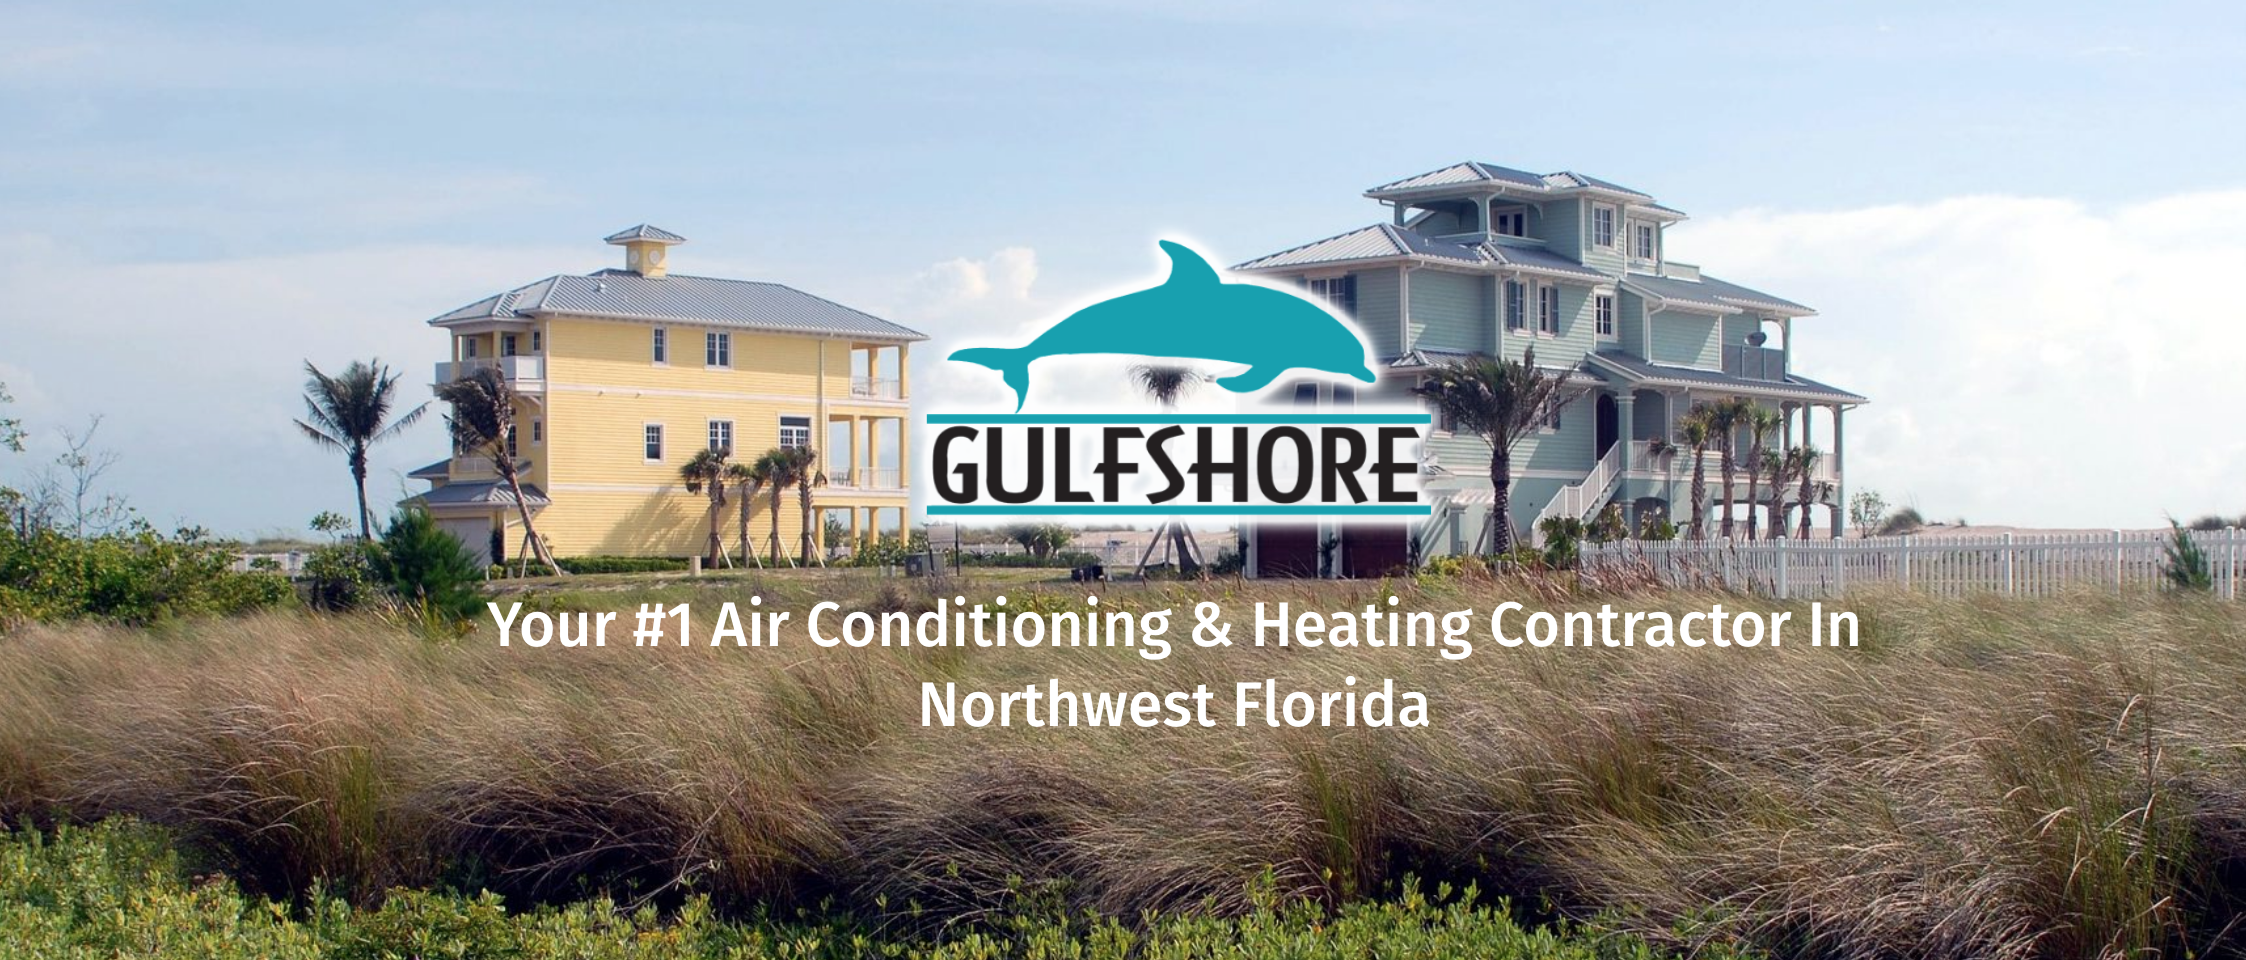 Air Conditioning and Heat Pumps Near Me- Gulfshore Air